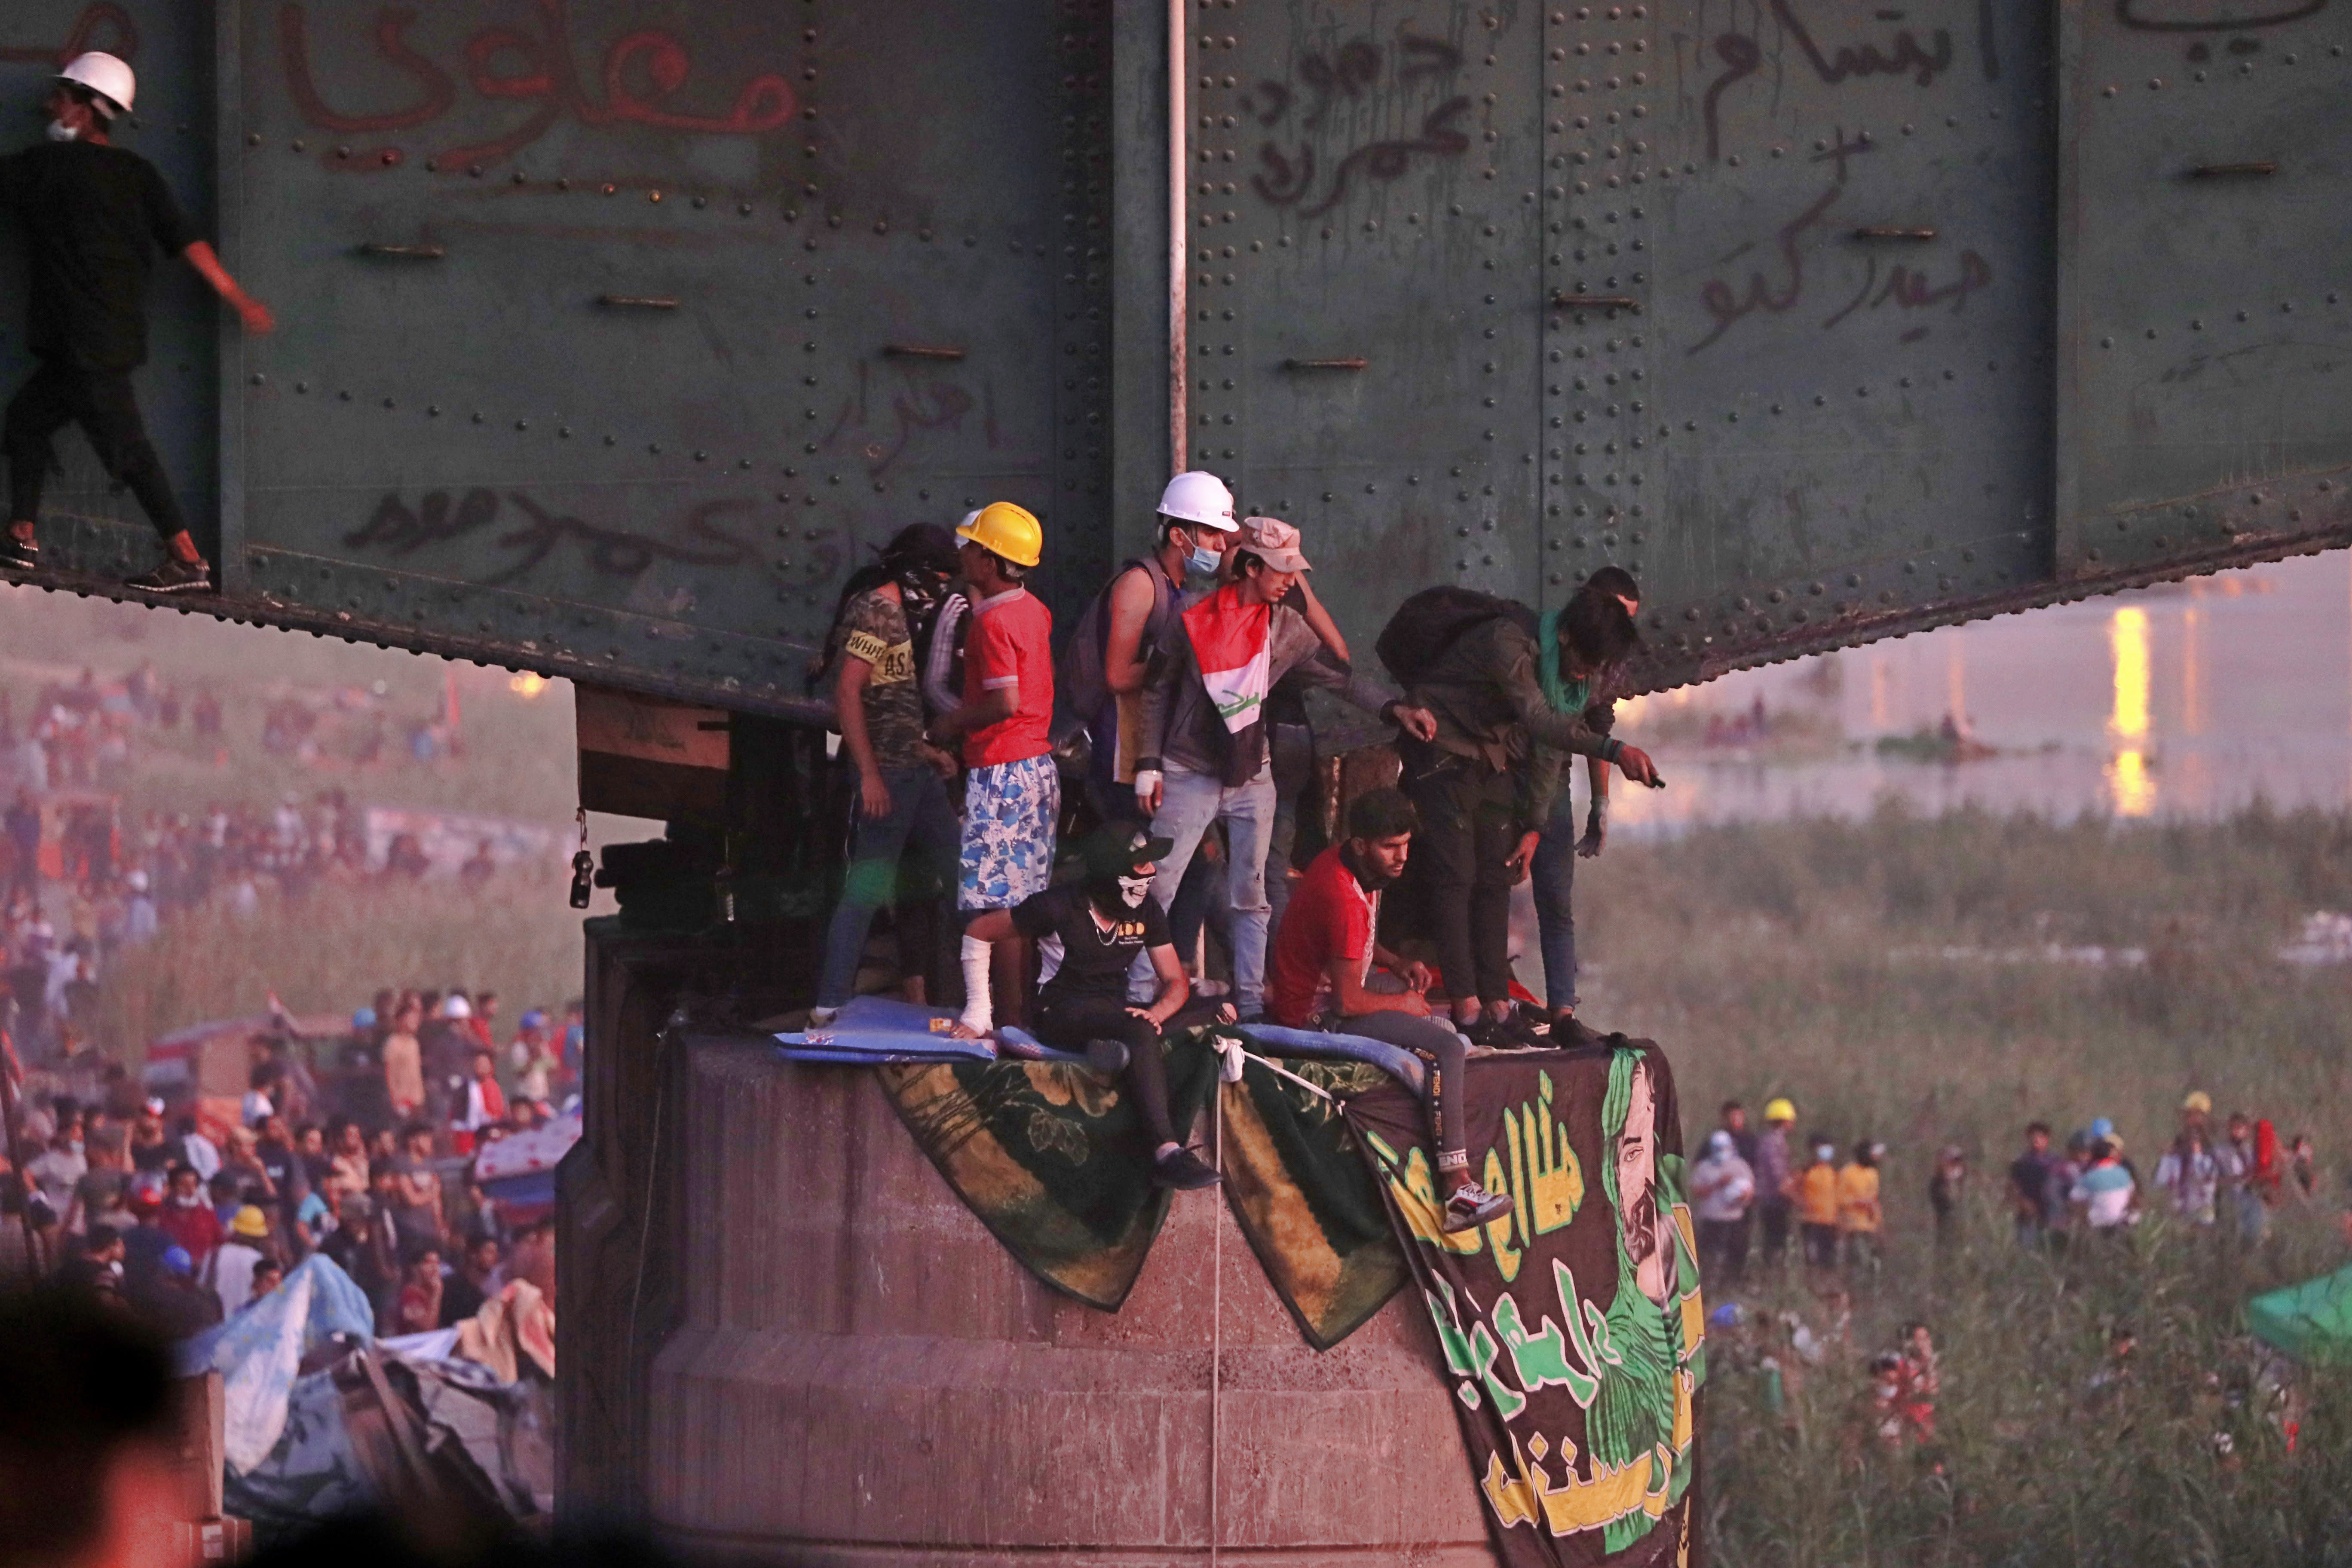 Protesters stage a sit-in under a bridge that leads to the Green Zone where many government offices and embassies are located, during ongoing anti-government protests in Baghdad, Iraq, Tuesday, Nov. 5, 2019. (AP Photo/Hadi Mizban)